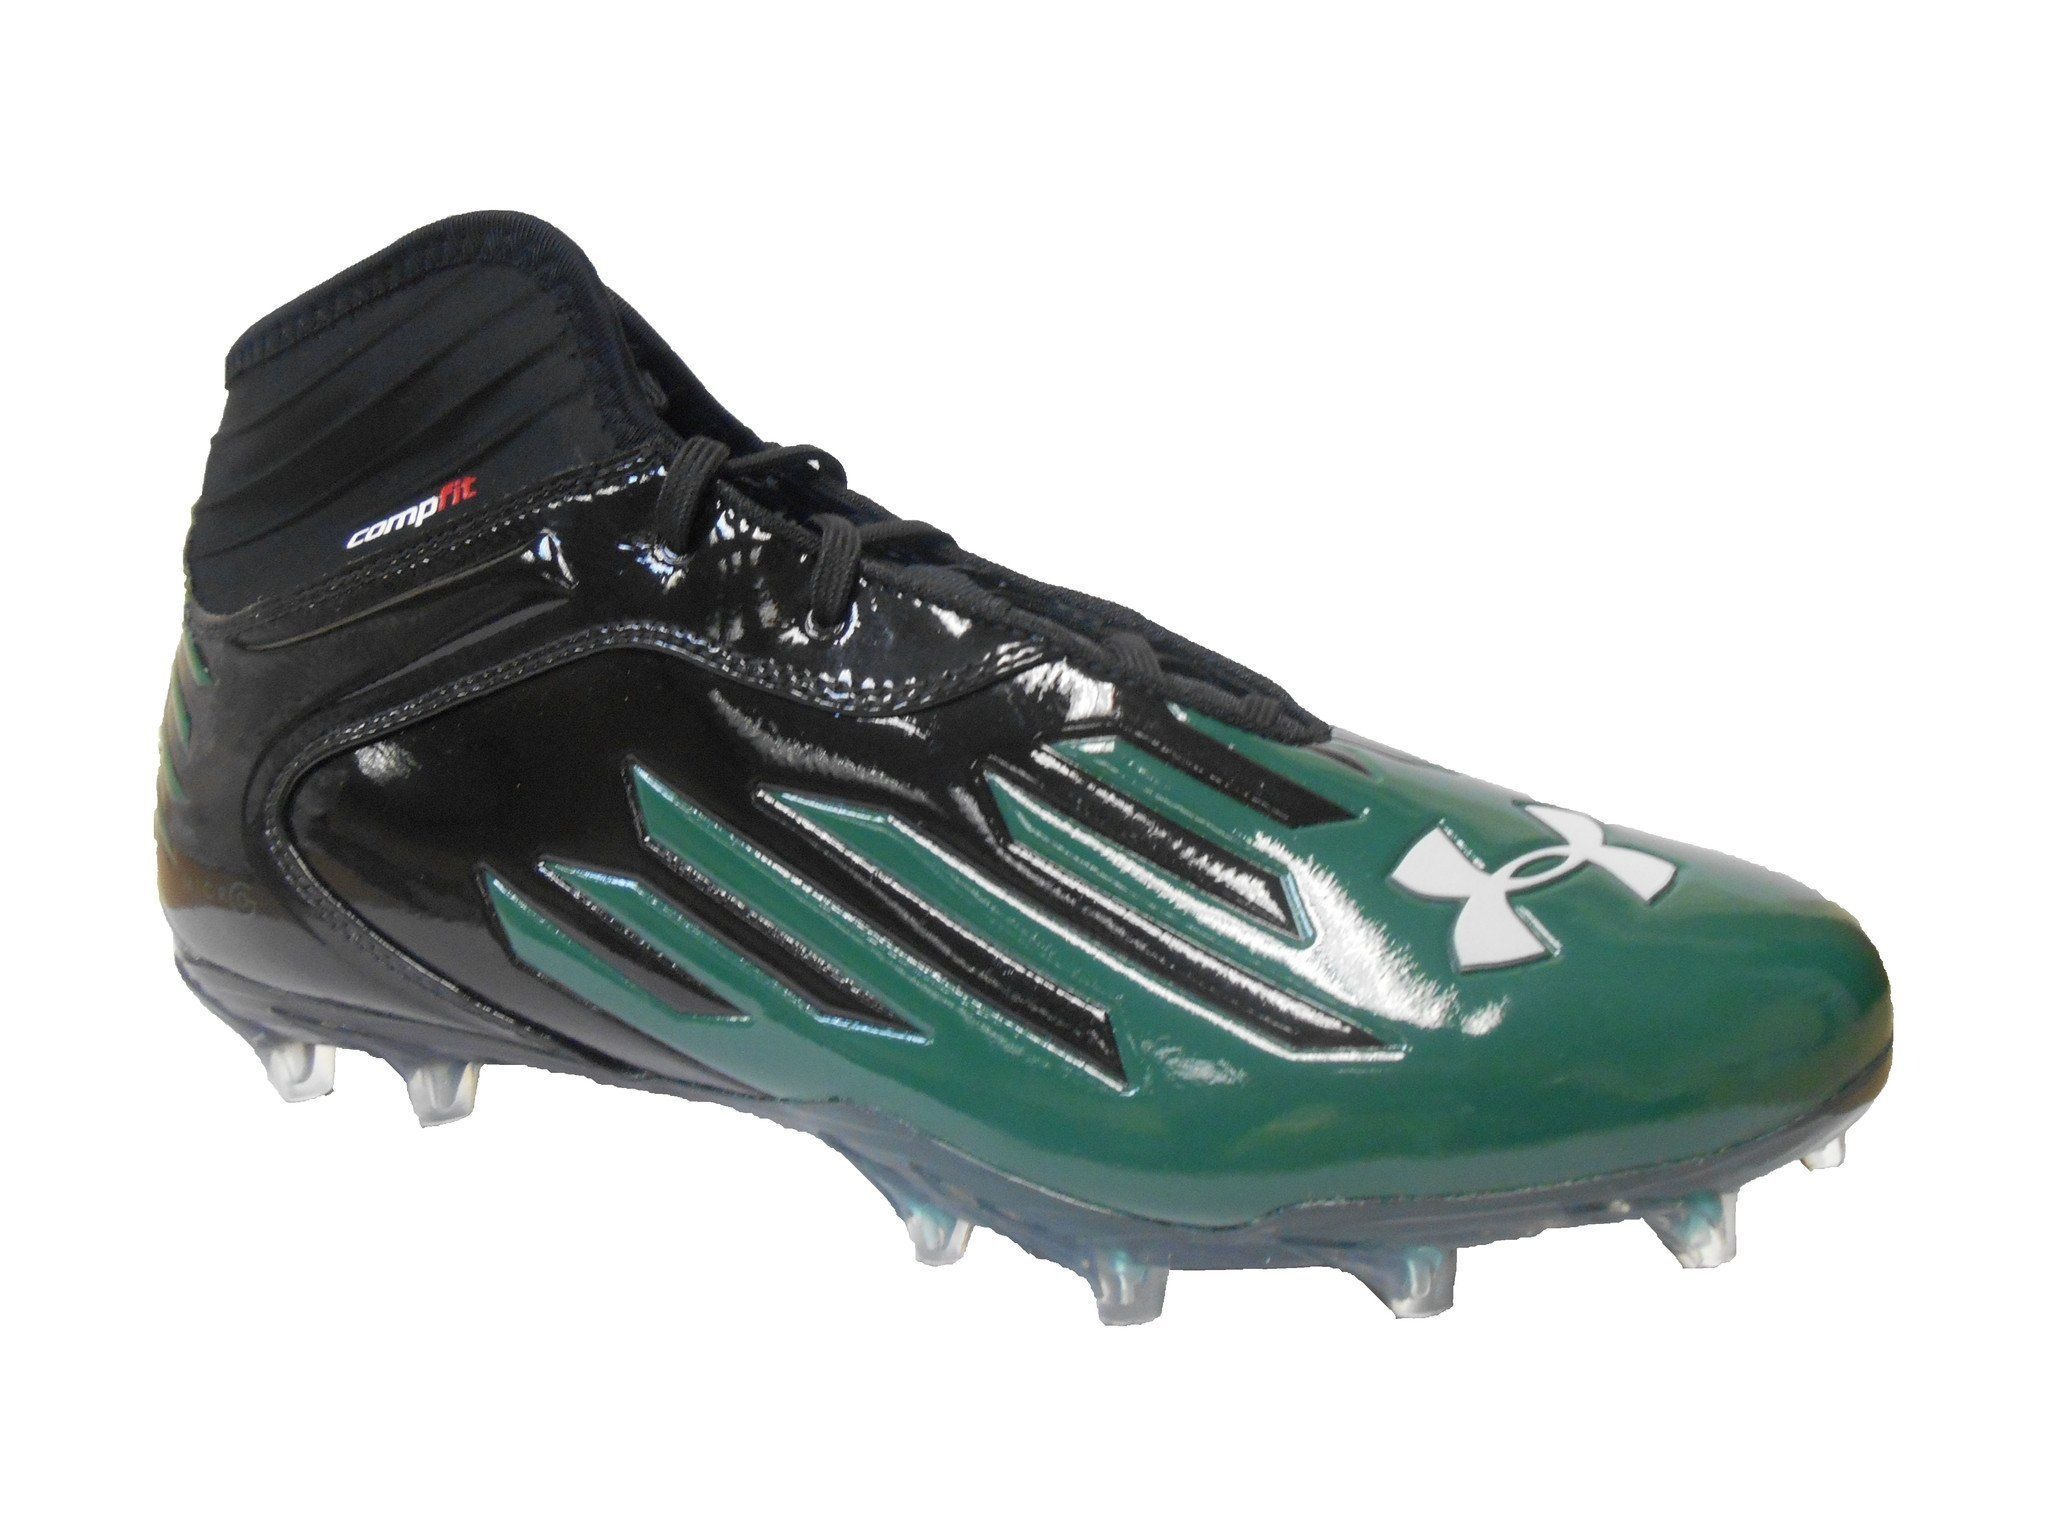 c81c3926bf8a Under Armour Team Nitro IV Mid MC Compfit Football Cleats | Products ...